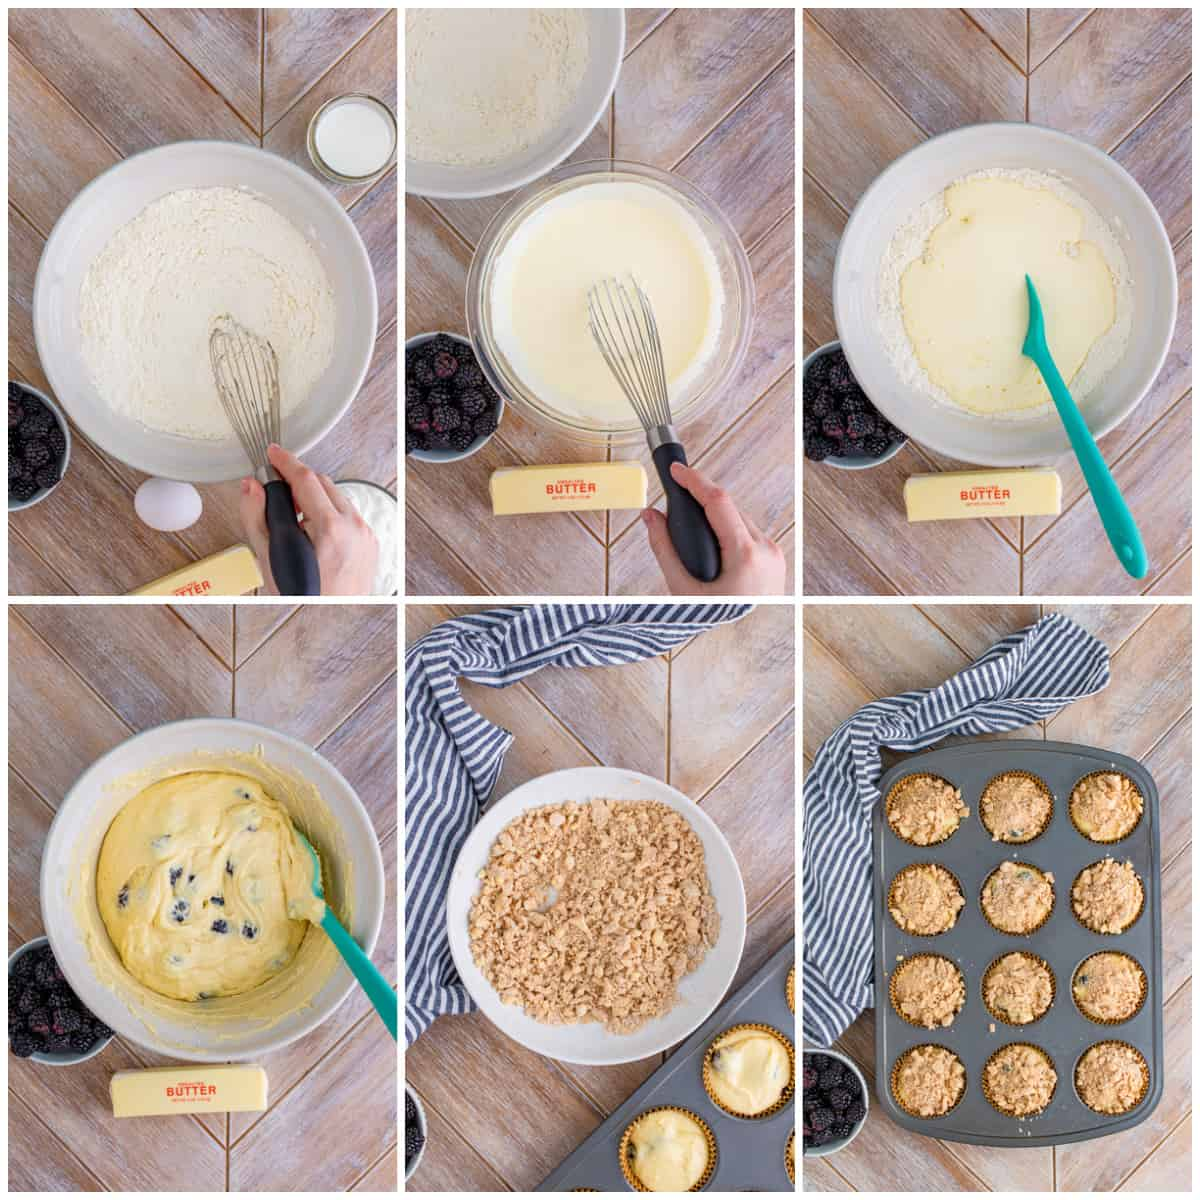 Step by step photos on how to make Blackberry Muffins